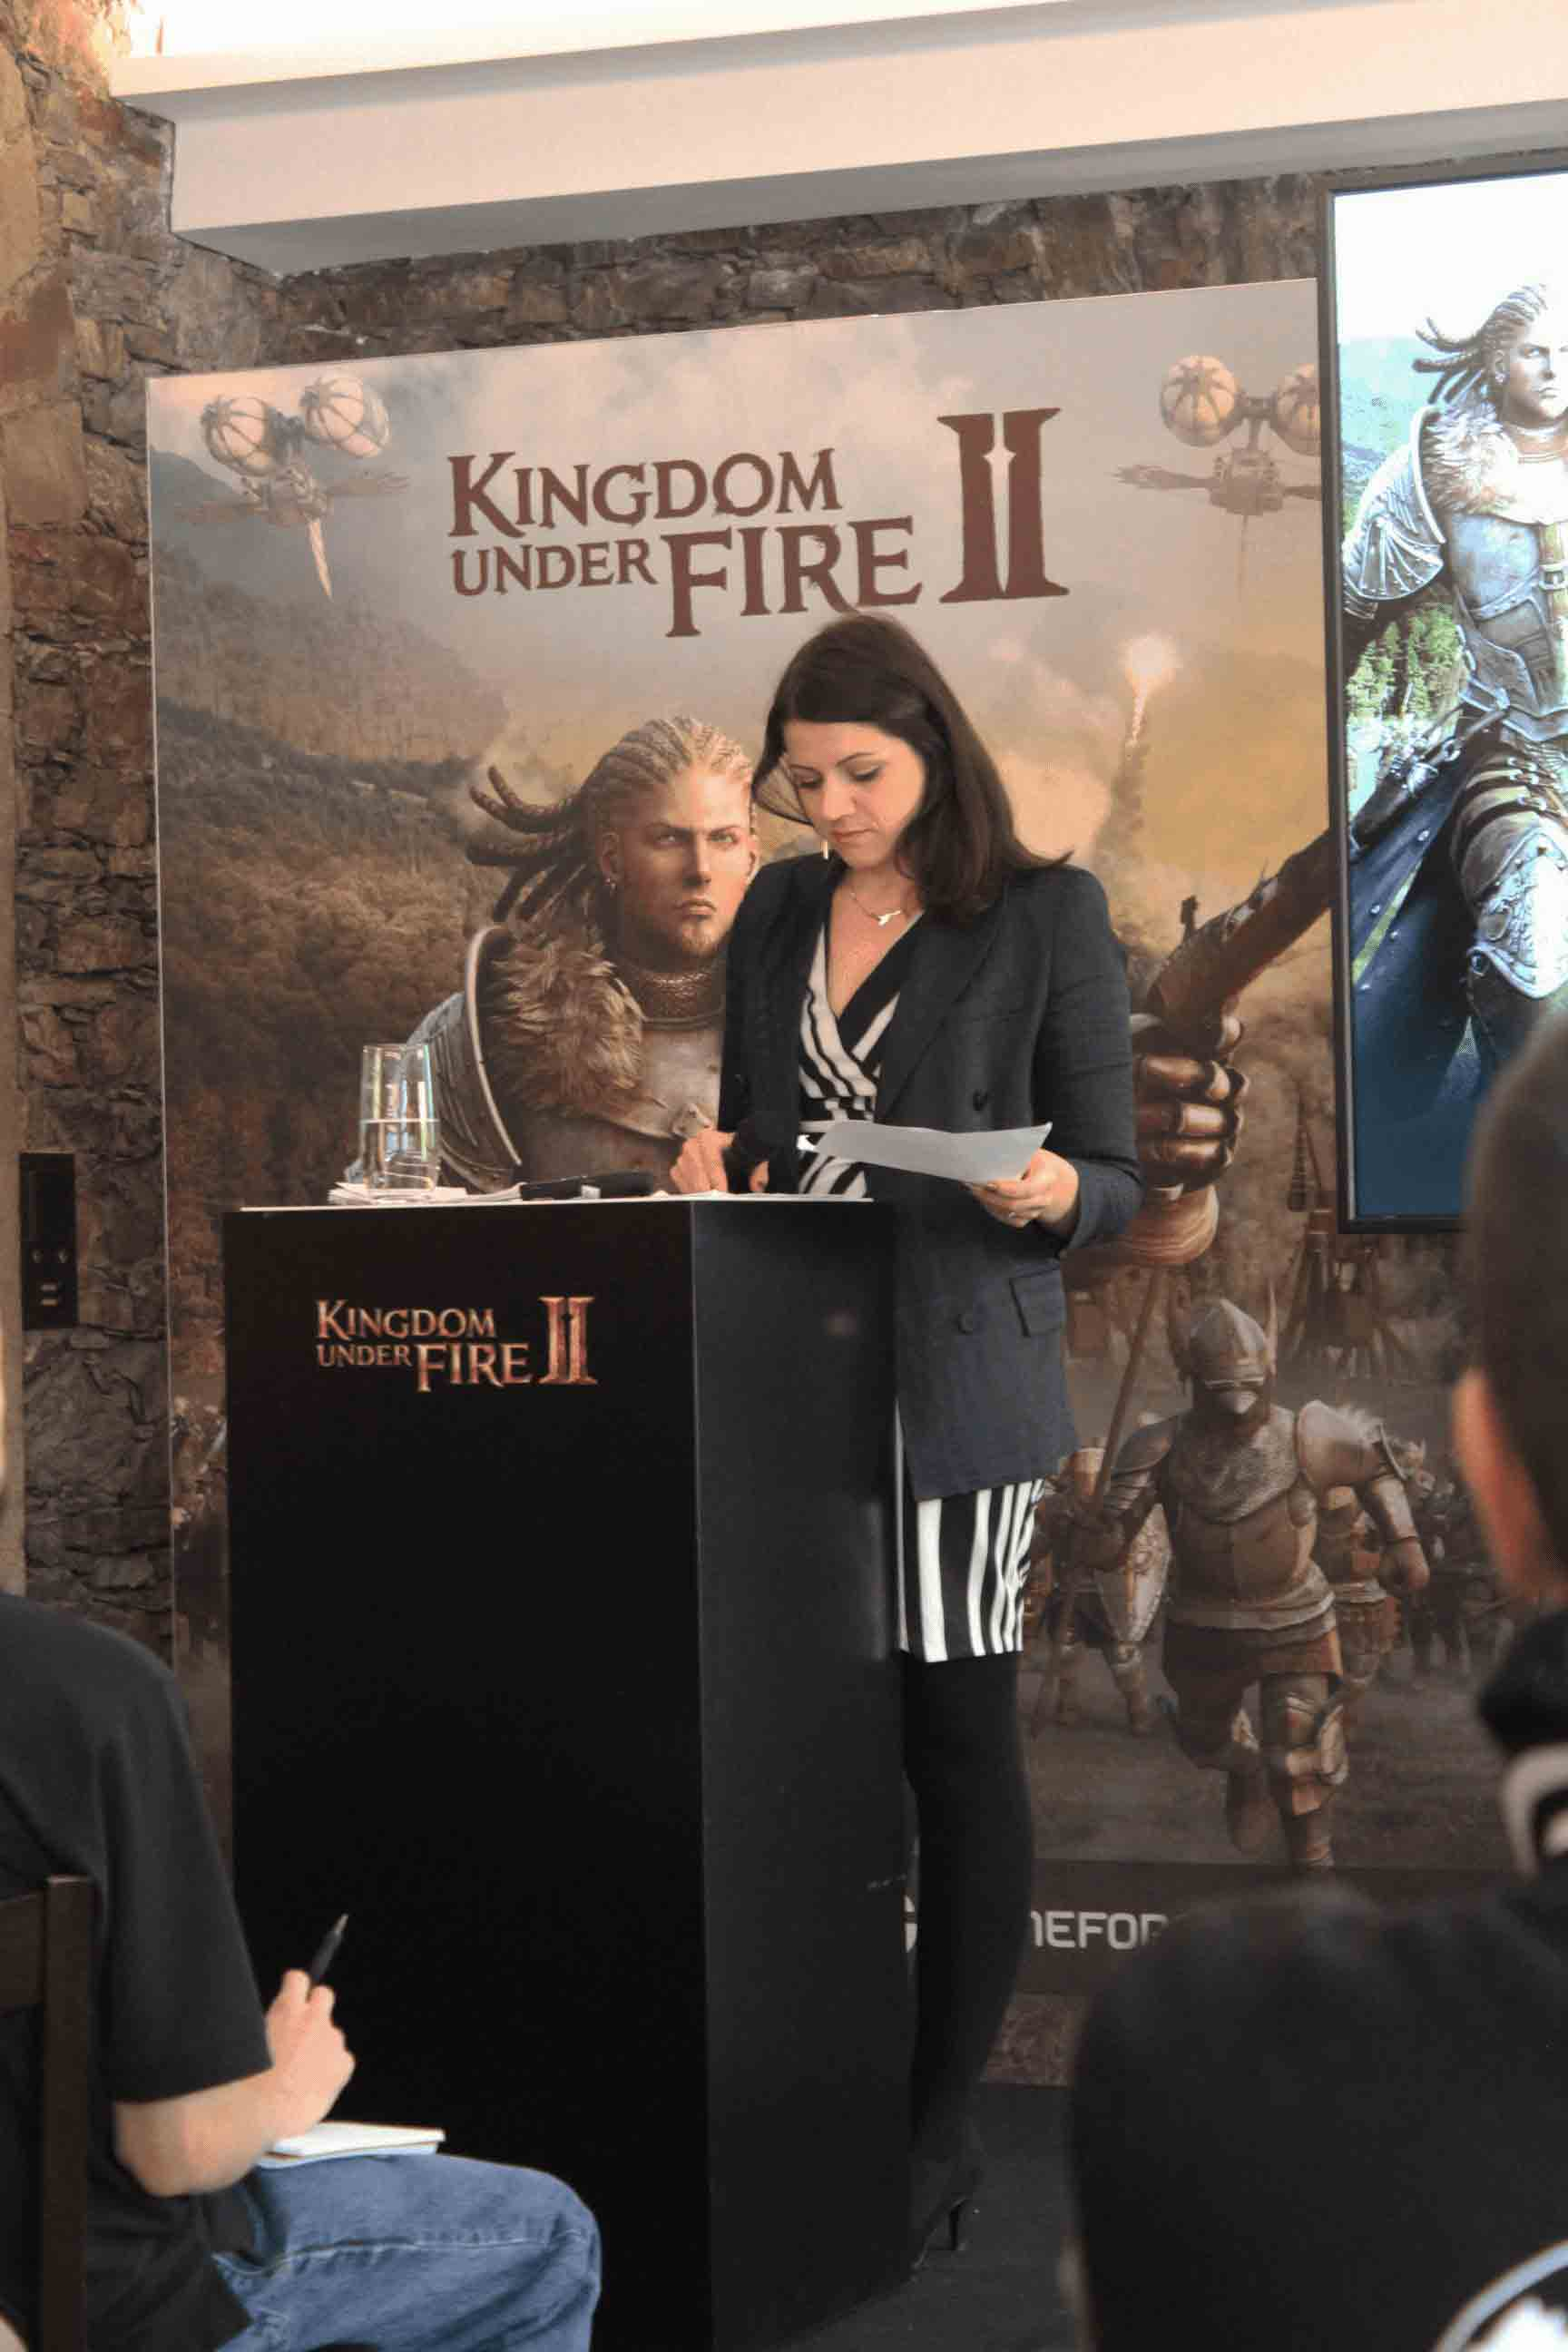 Kingdom Under Fire II - Noemi §Ferrel, Gameforge